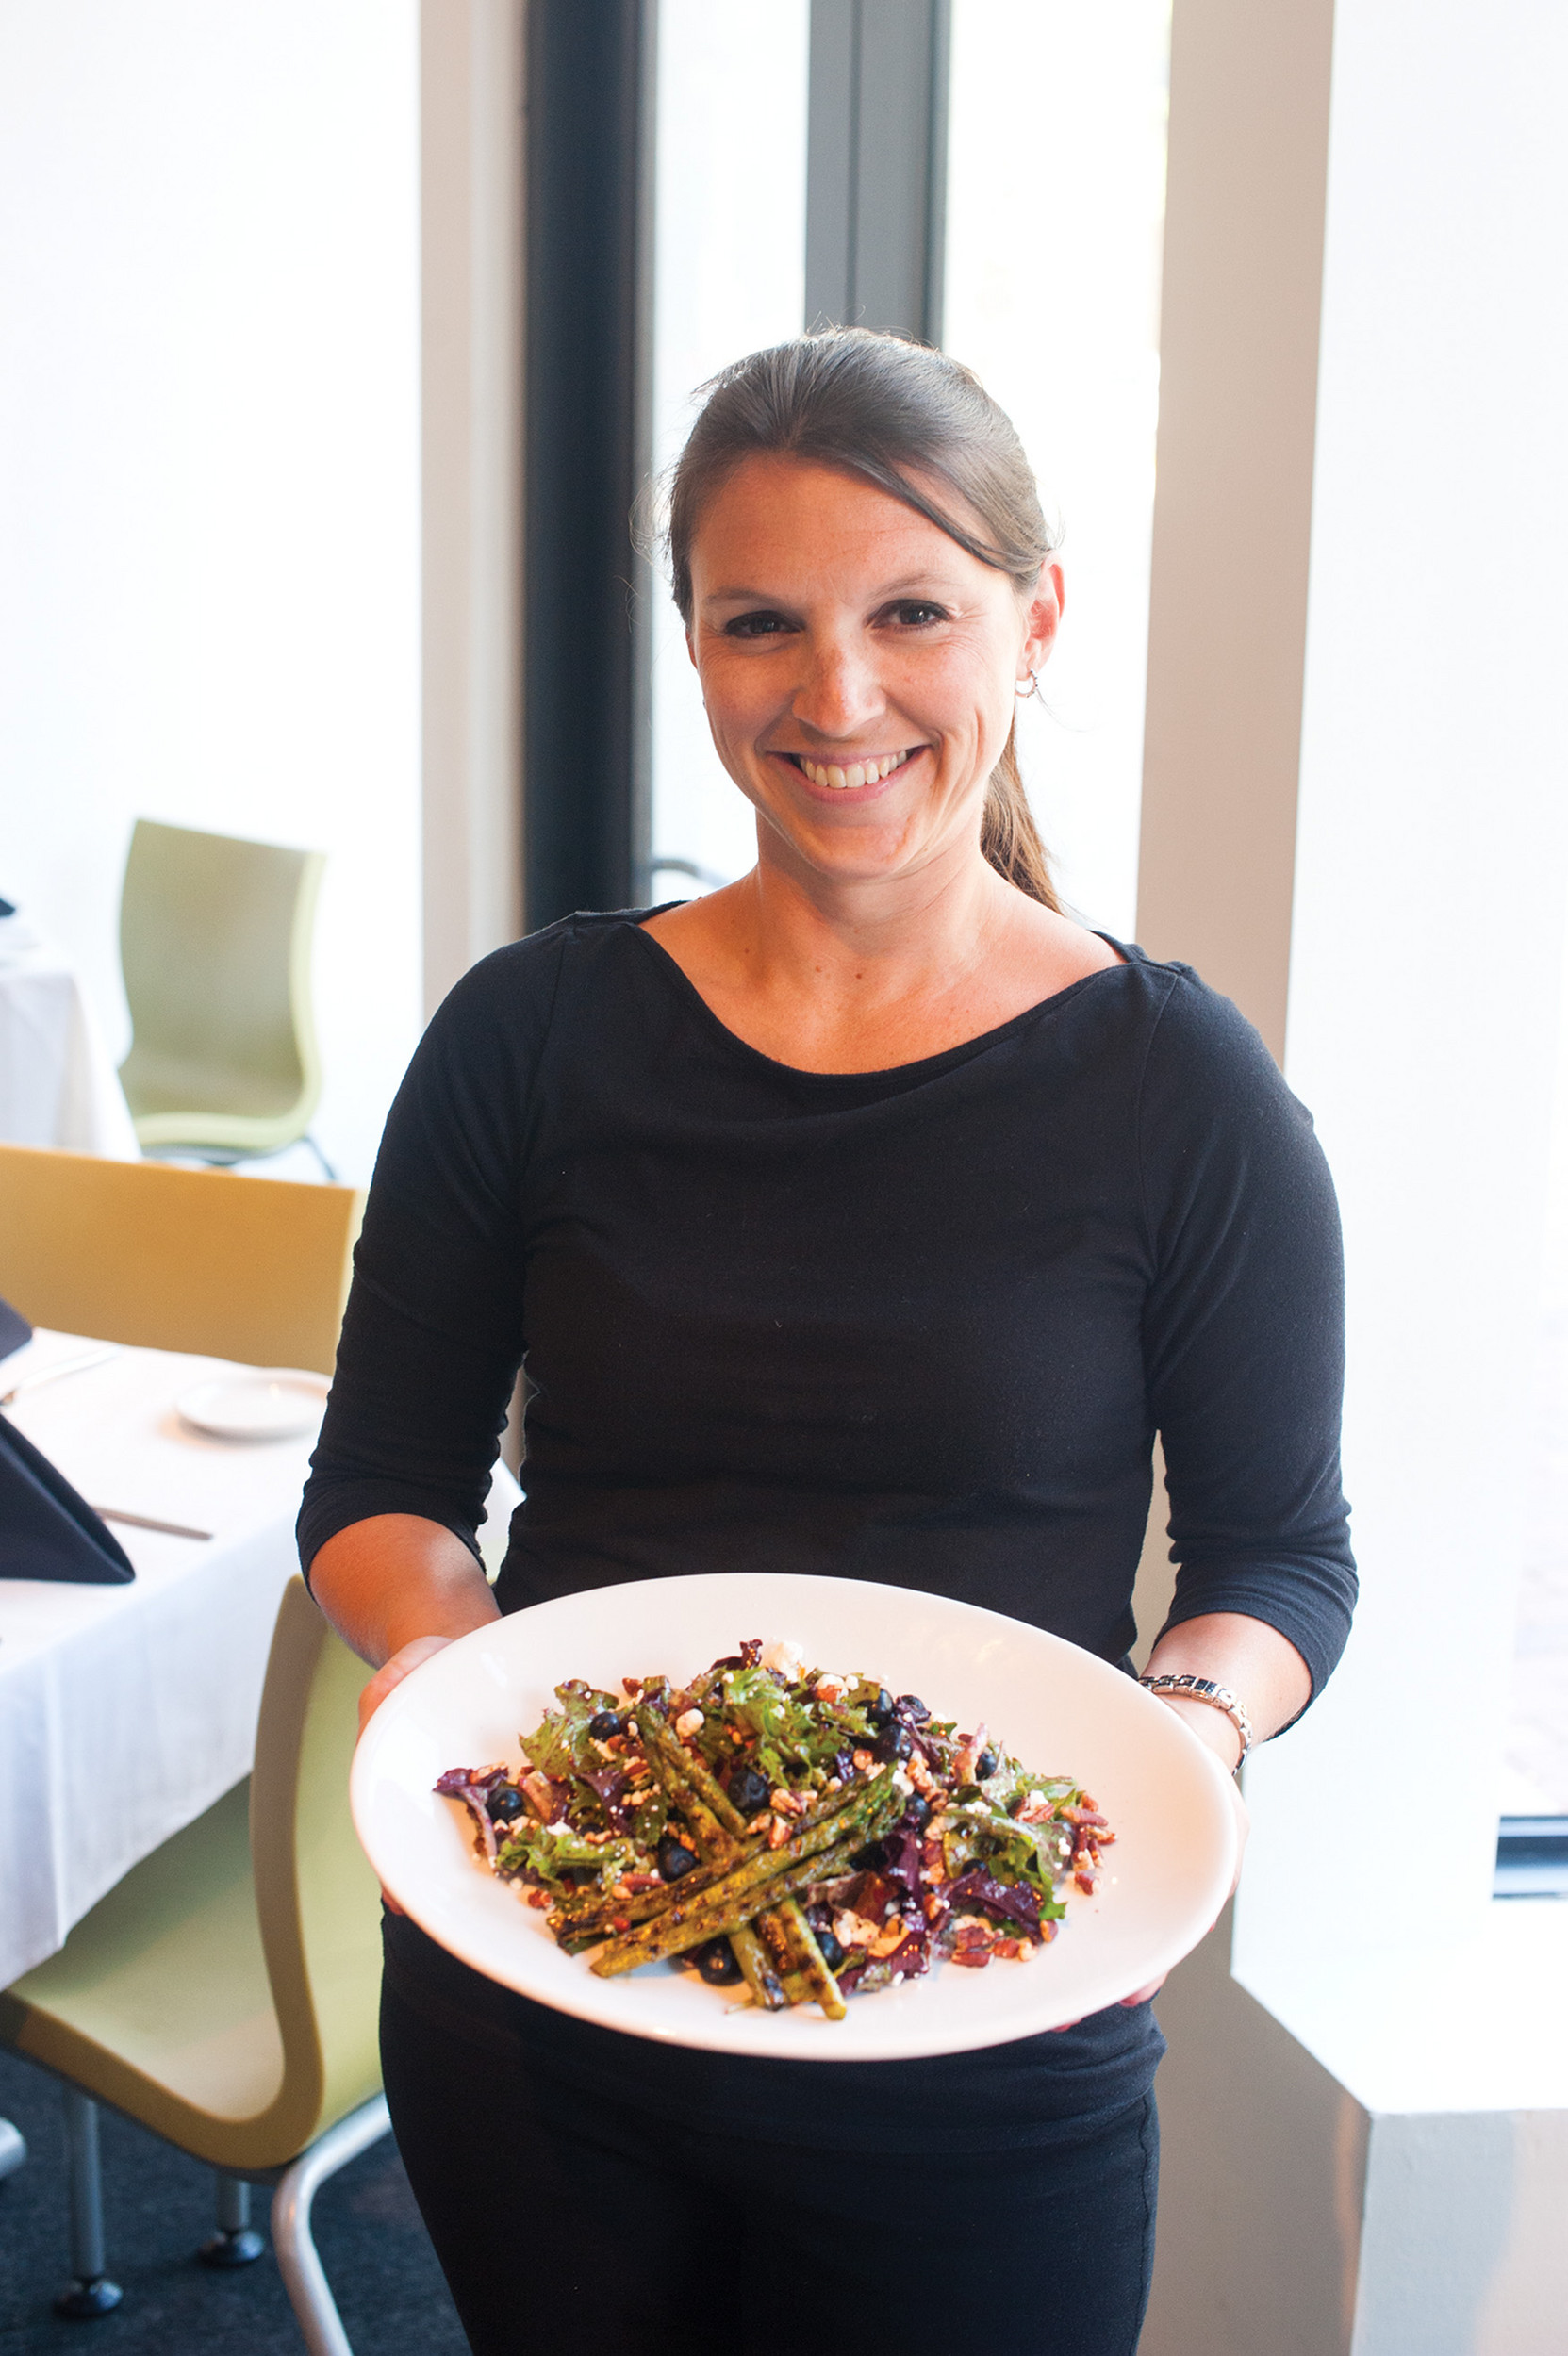 Jenna Cassel serves a grilled asparagus salad with blueberries, goat cheese and pecans at Café Nola inside Downtown's Museum of Contemporary Art Jacksonville.